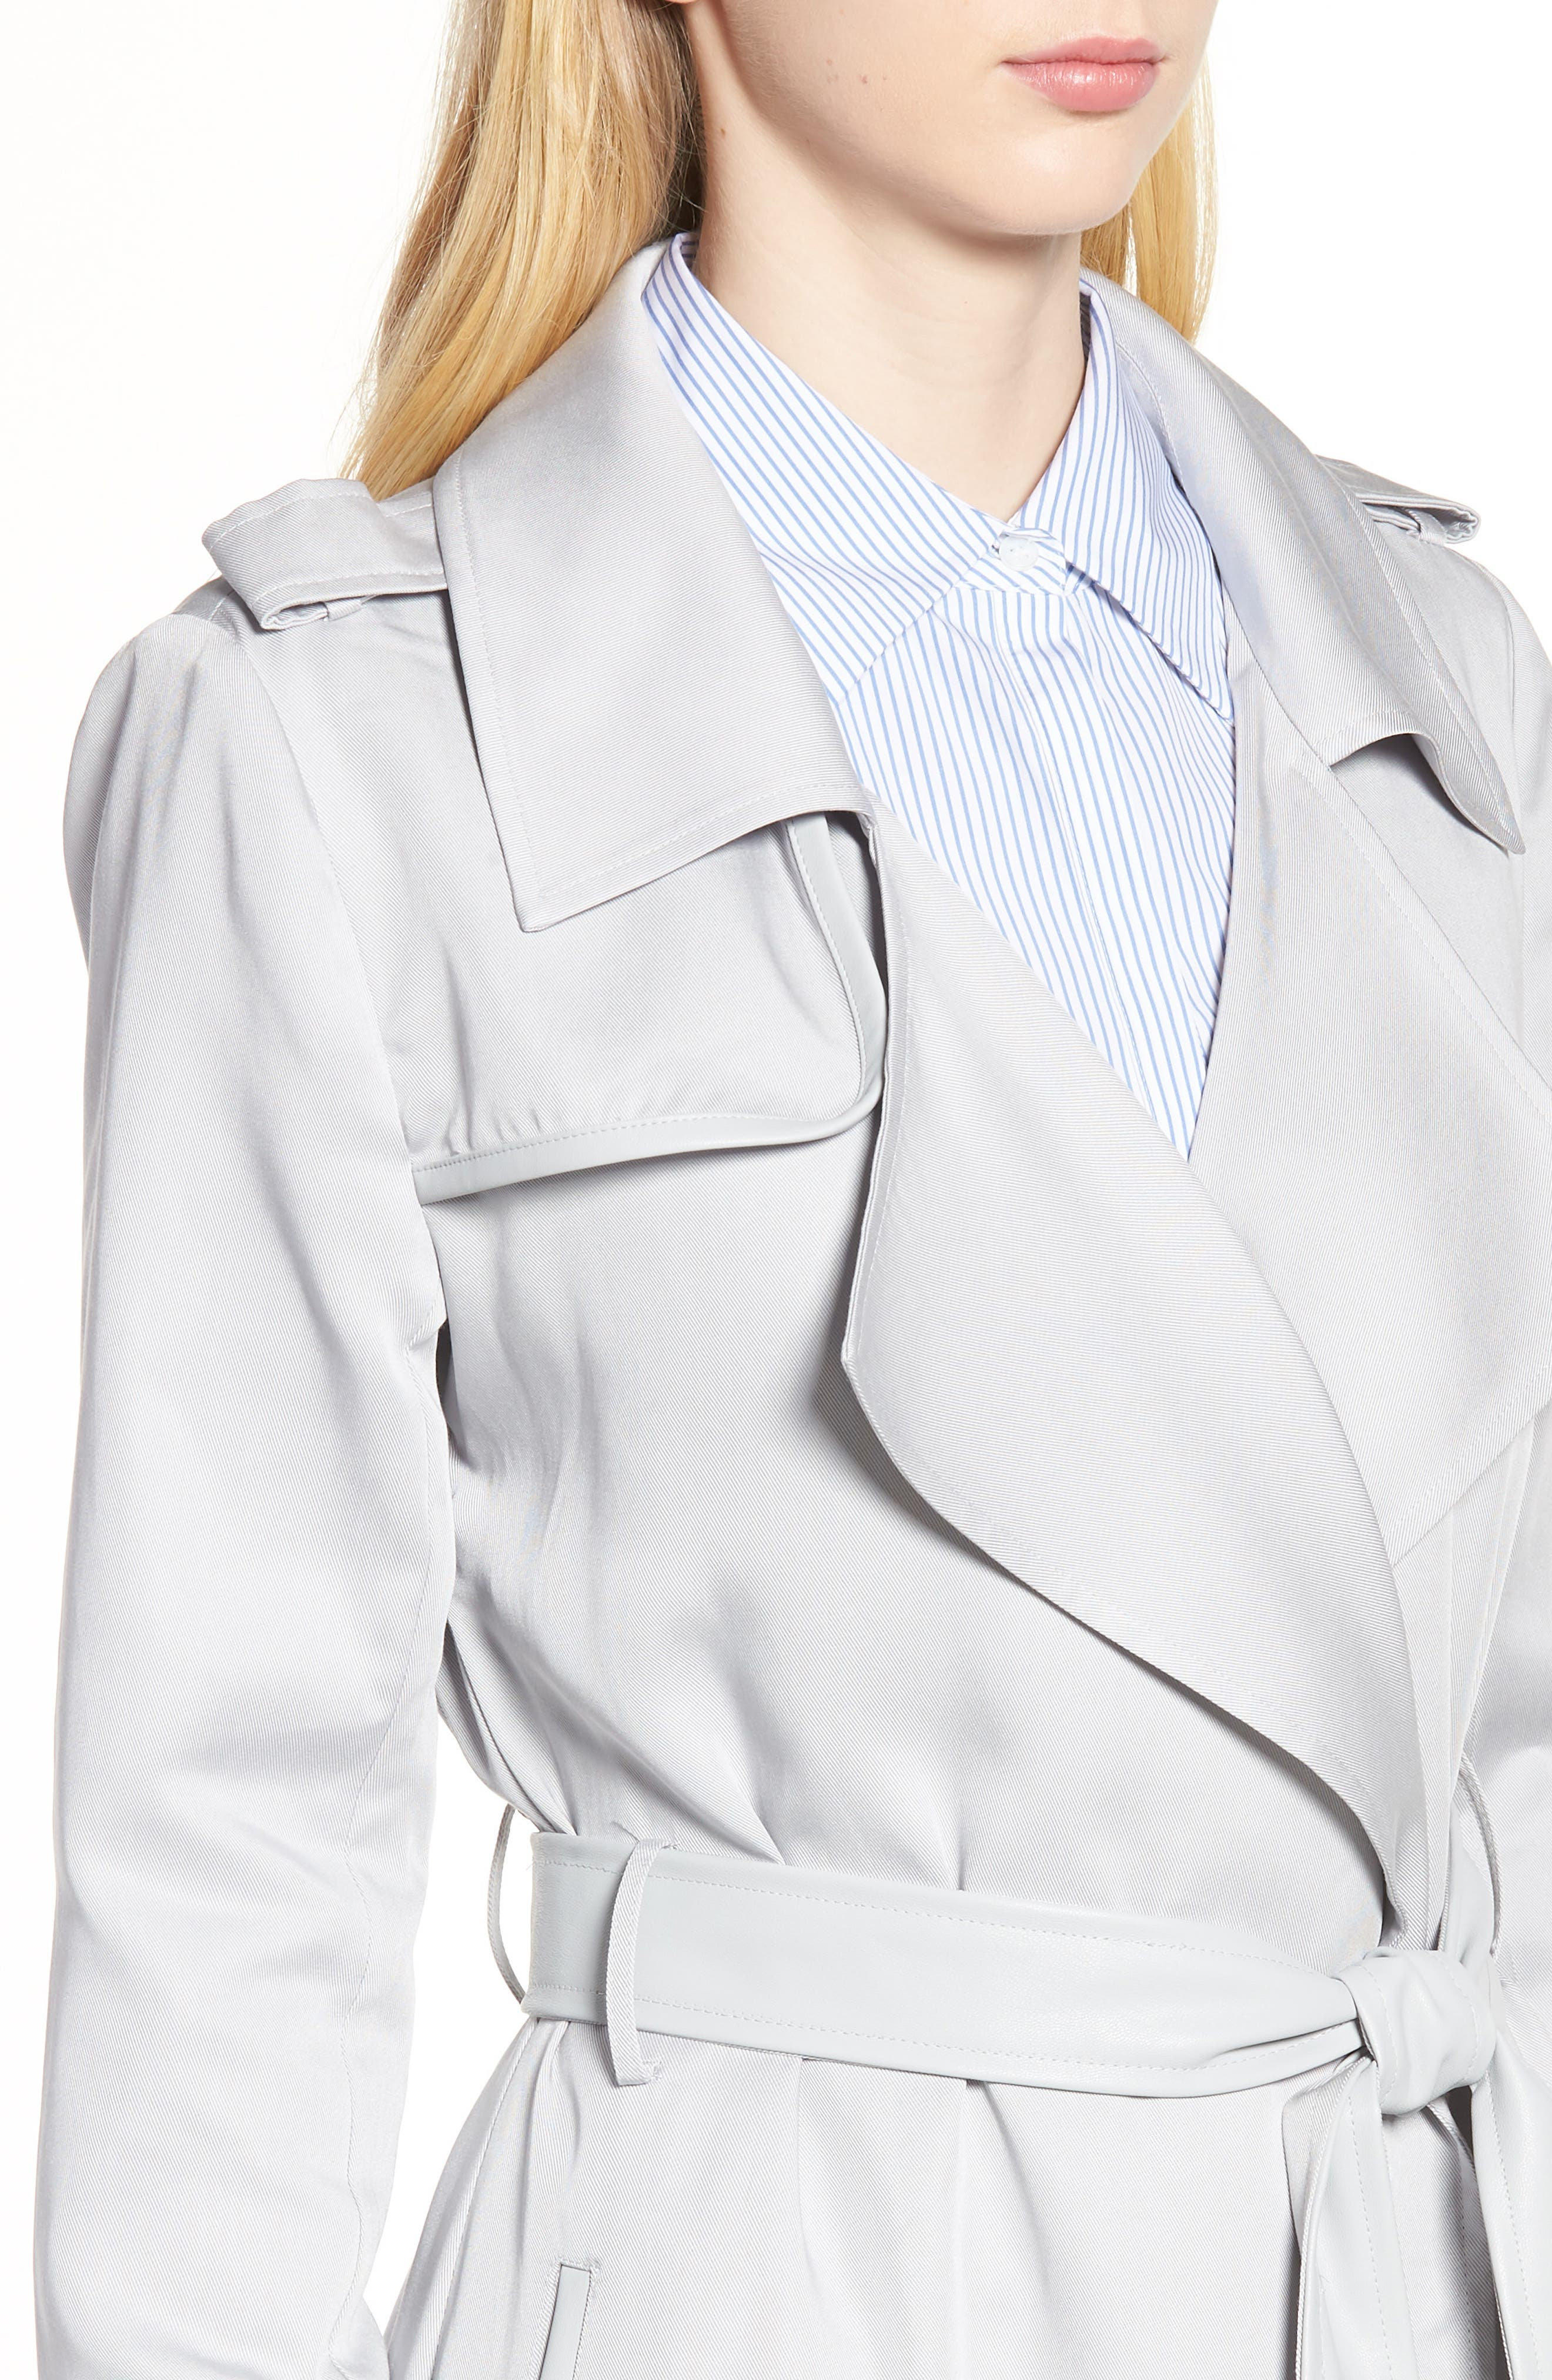 Badgley Mischka Faux Leather Trim Long Trench Coat,                             Alternate thumbnail 4, color,                             020